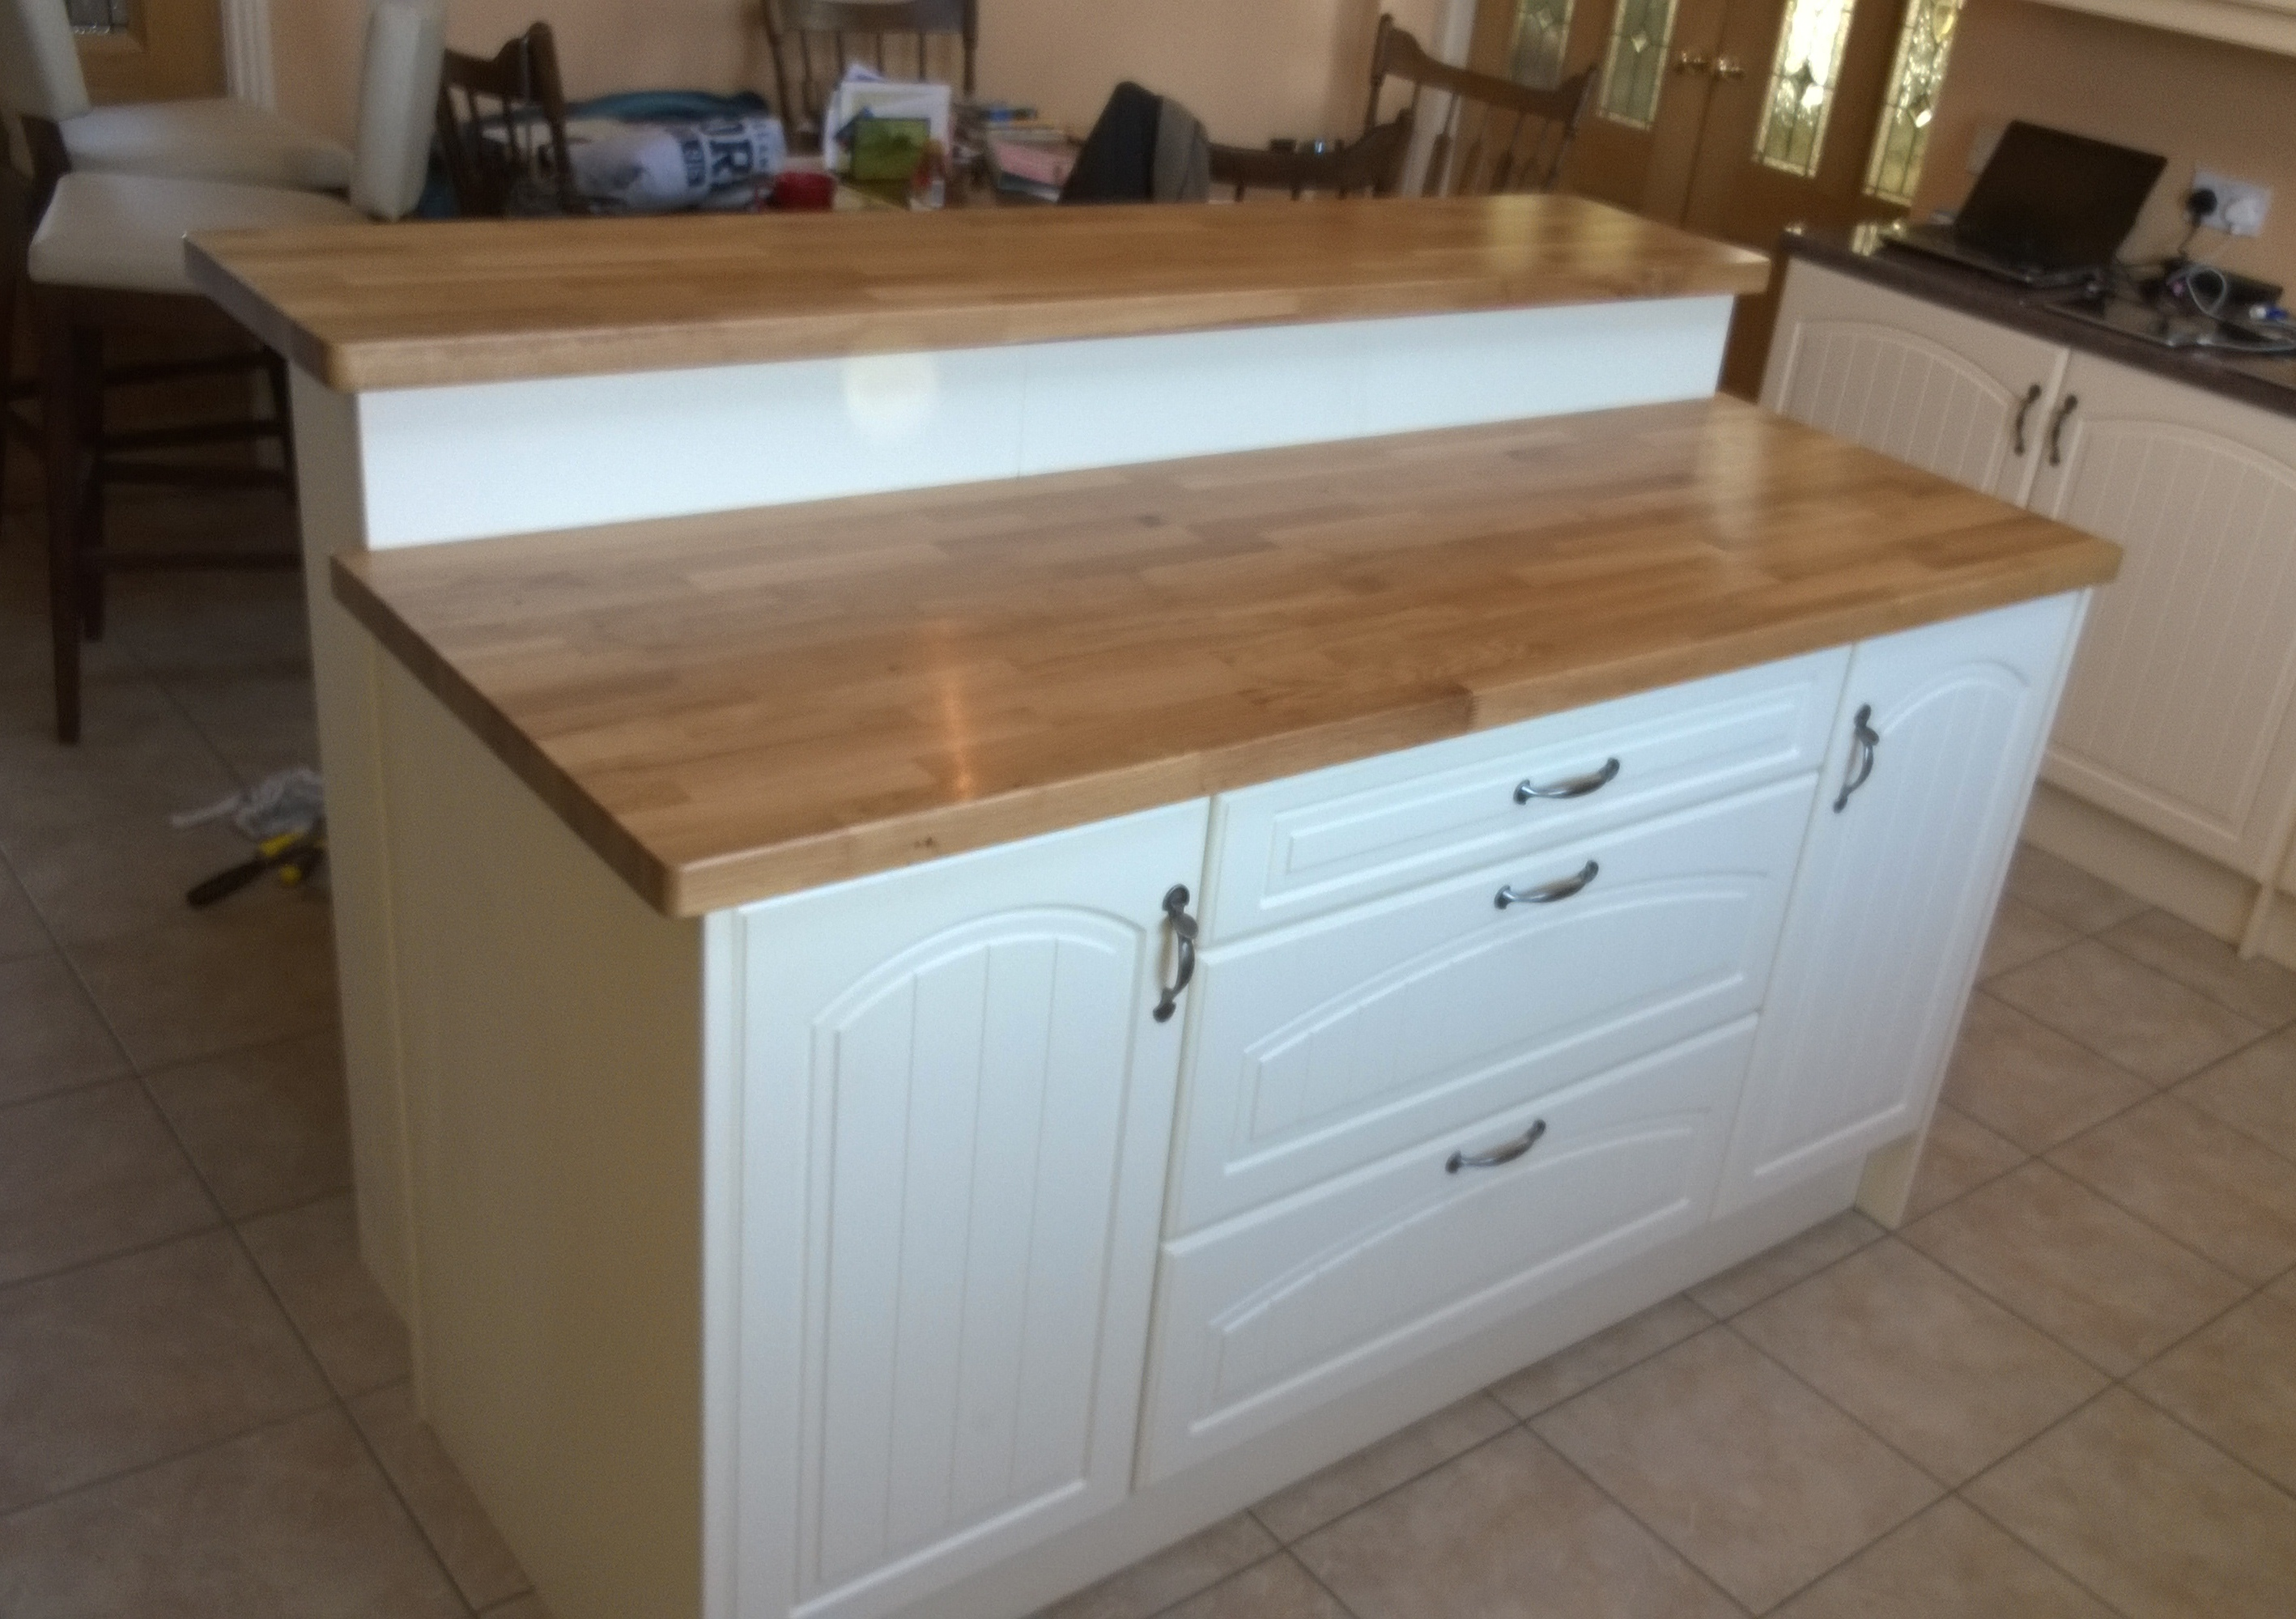 thekitchenwright adding an island to an existing kitchen kitchens k m fitted furniture     adding an island to an existing kitchen   small project adding an      rh   diydesign org